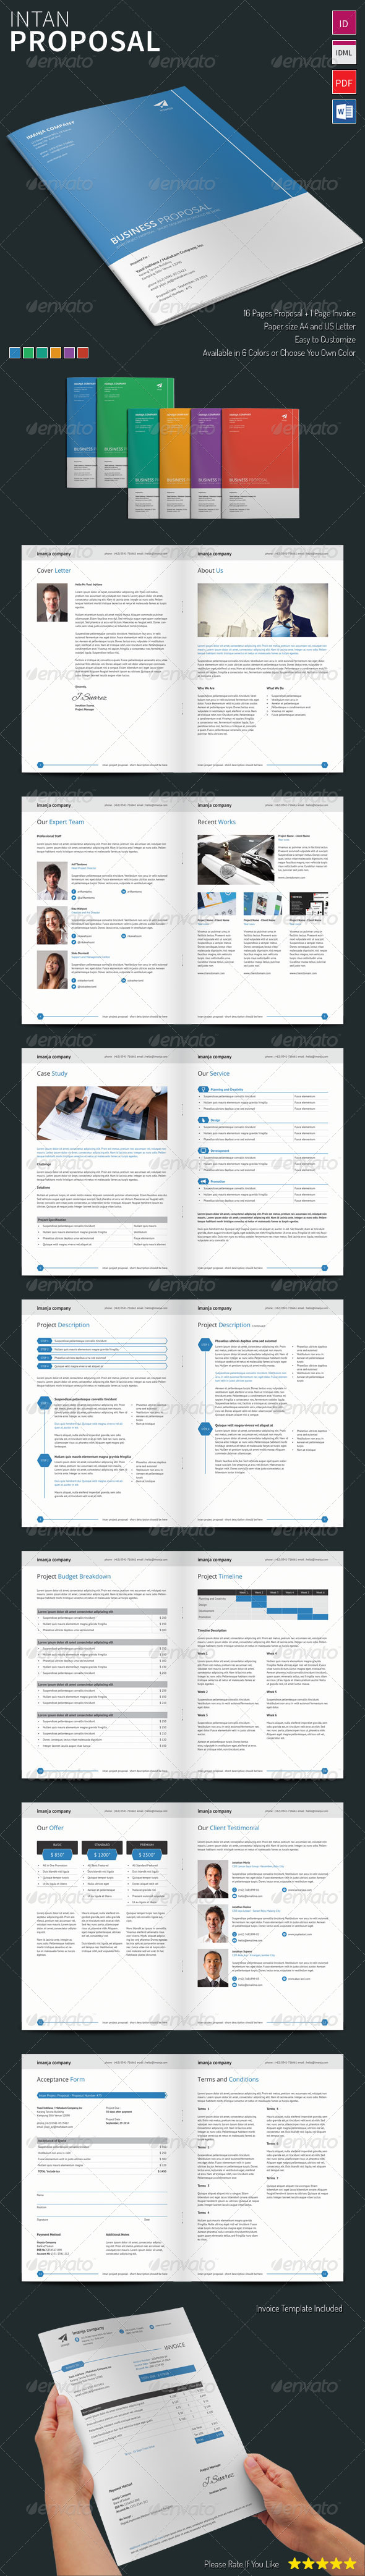 GraphicRiver Intan Proposal Template 8253783